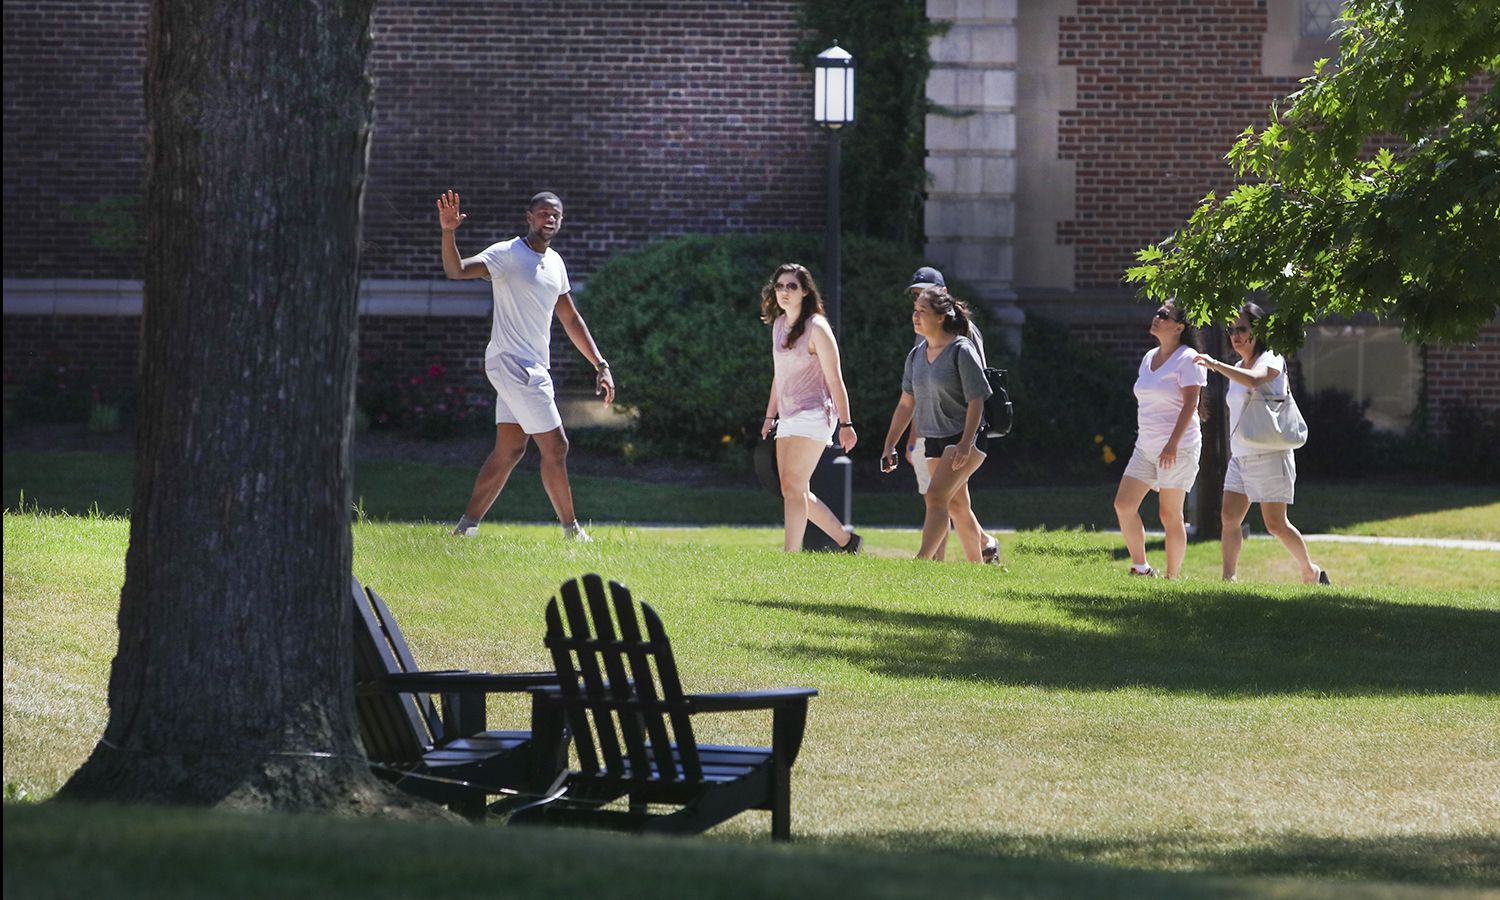 Admissions tour guide Edens Fleurizard '20 leads a group of prospective students through campus.